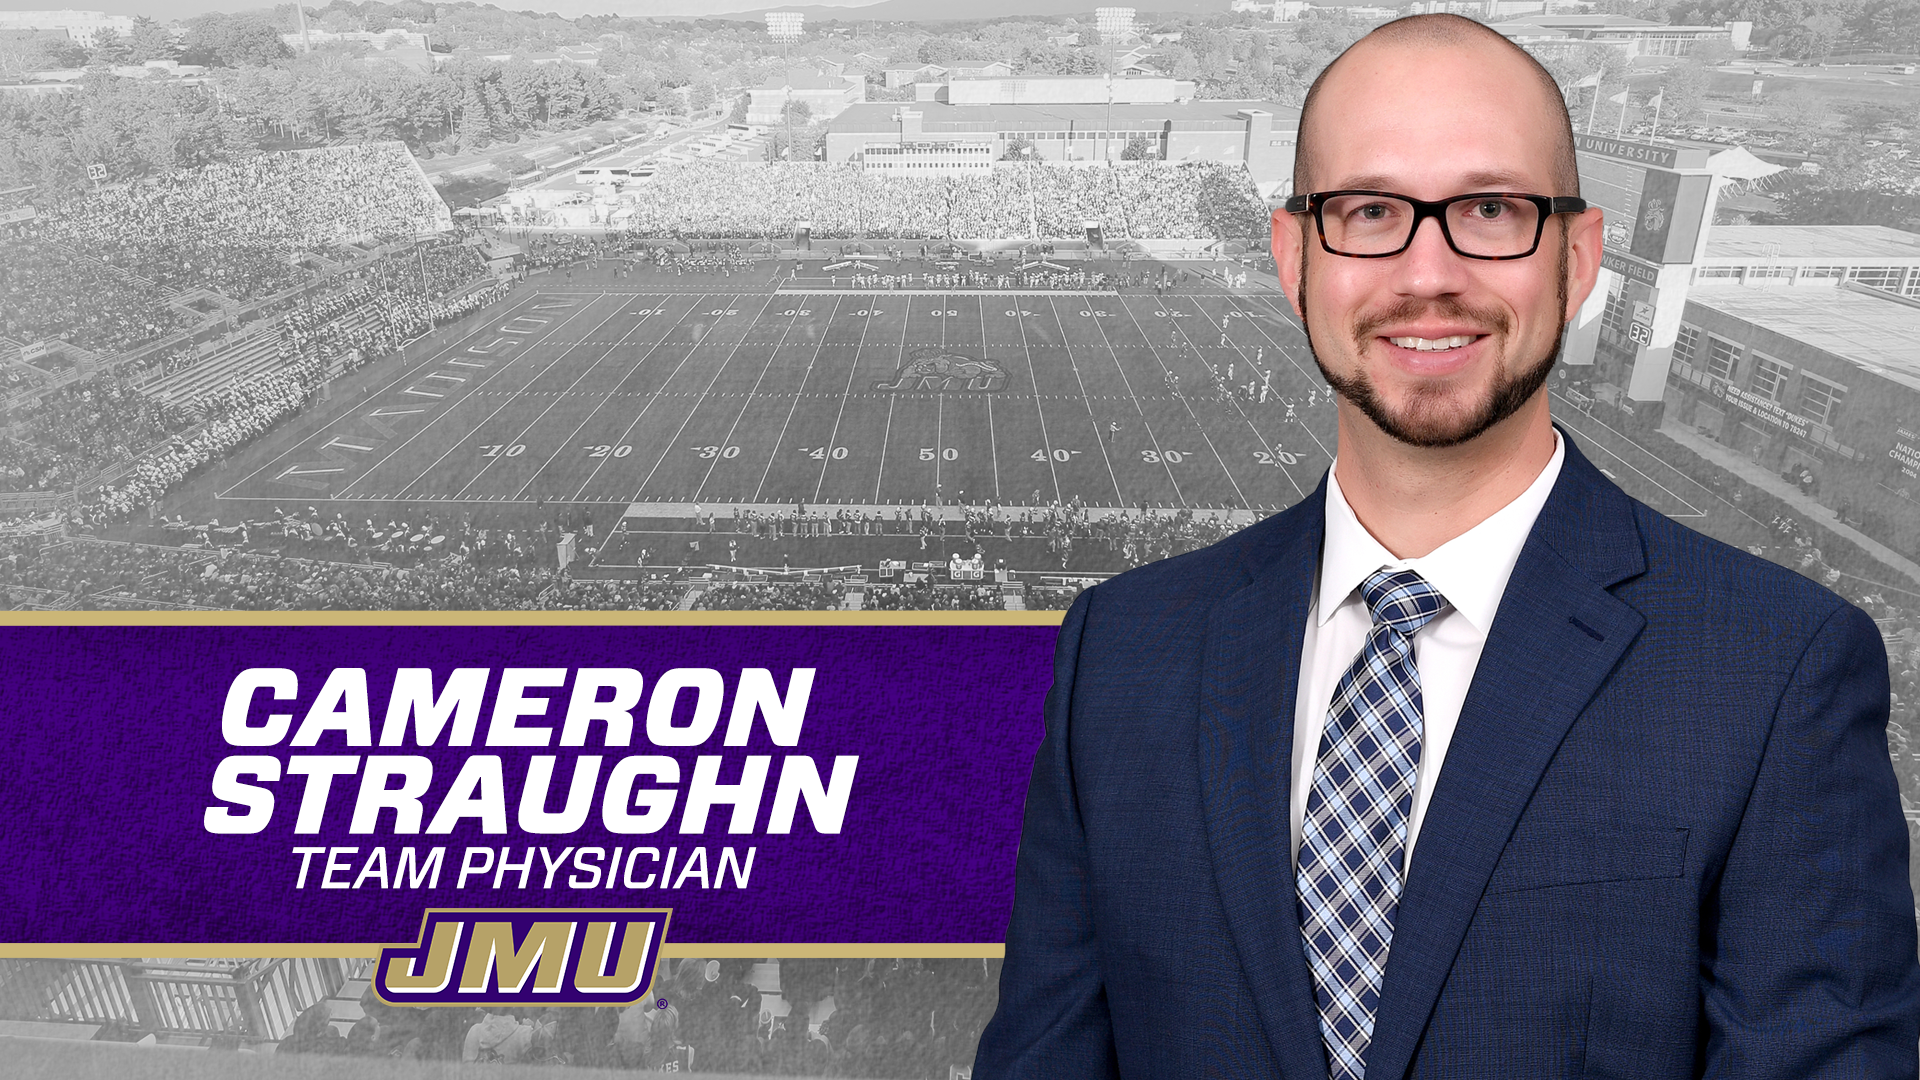 Cameron Straughn Named as Team Physician - James Madison